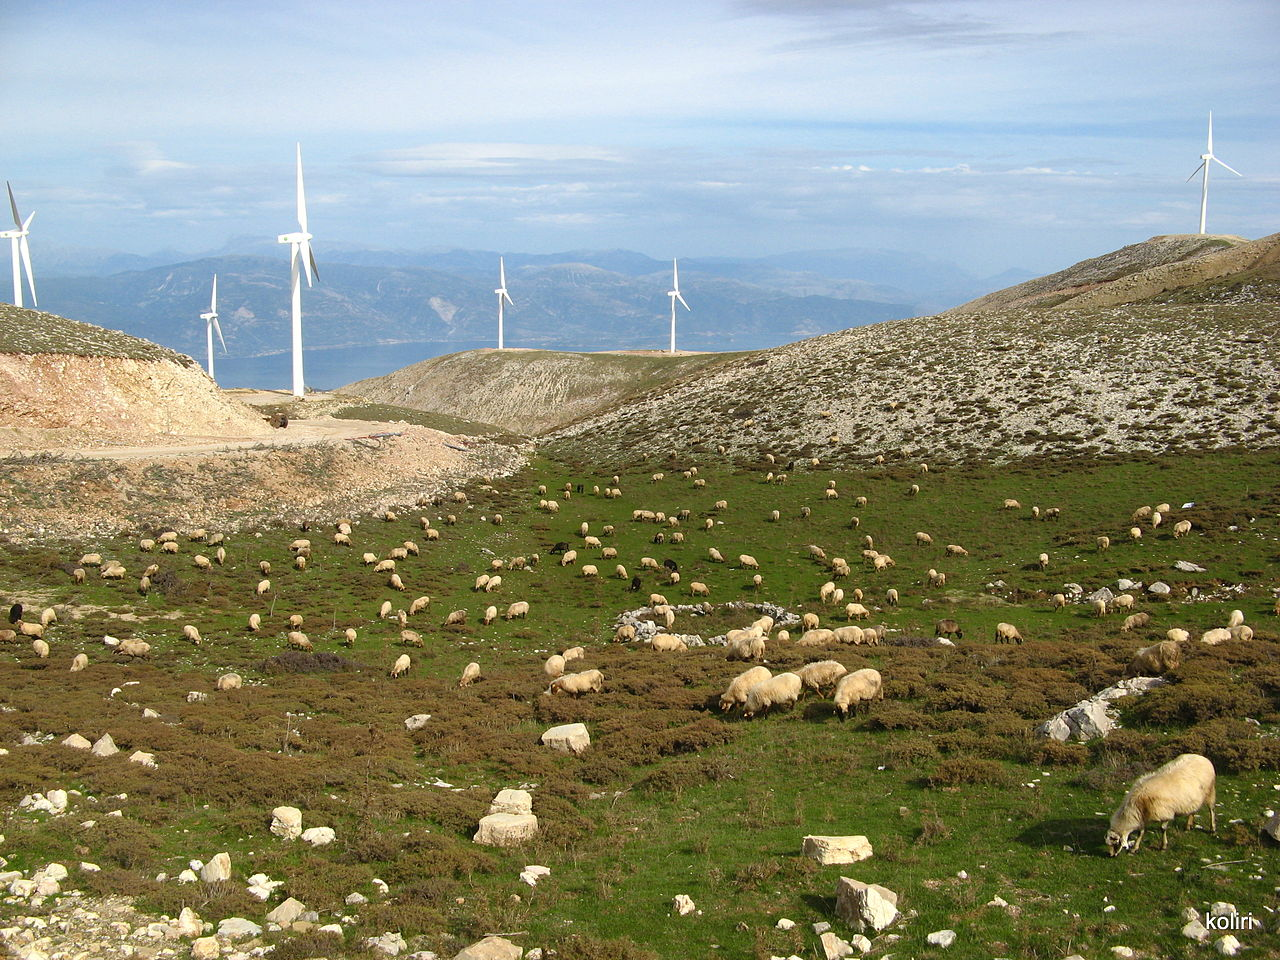 Windfarm & sheep grazing in Panachaiko Mountains, Greece - photo found on Wiki Commons and attributable to Koliri